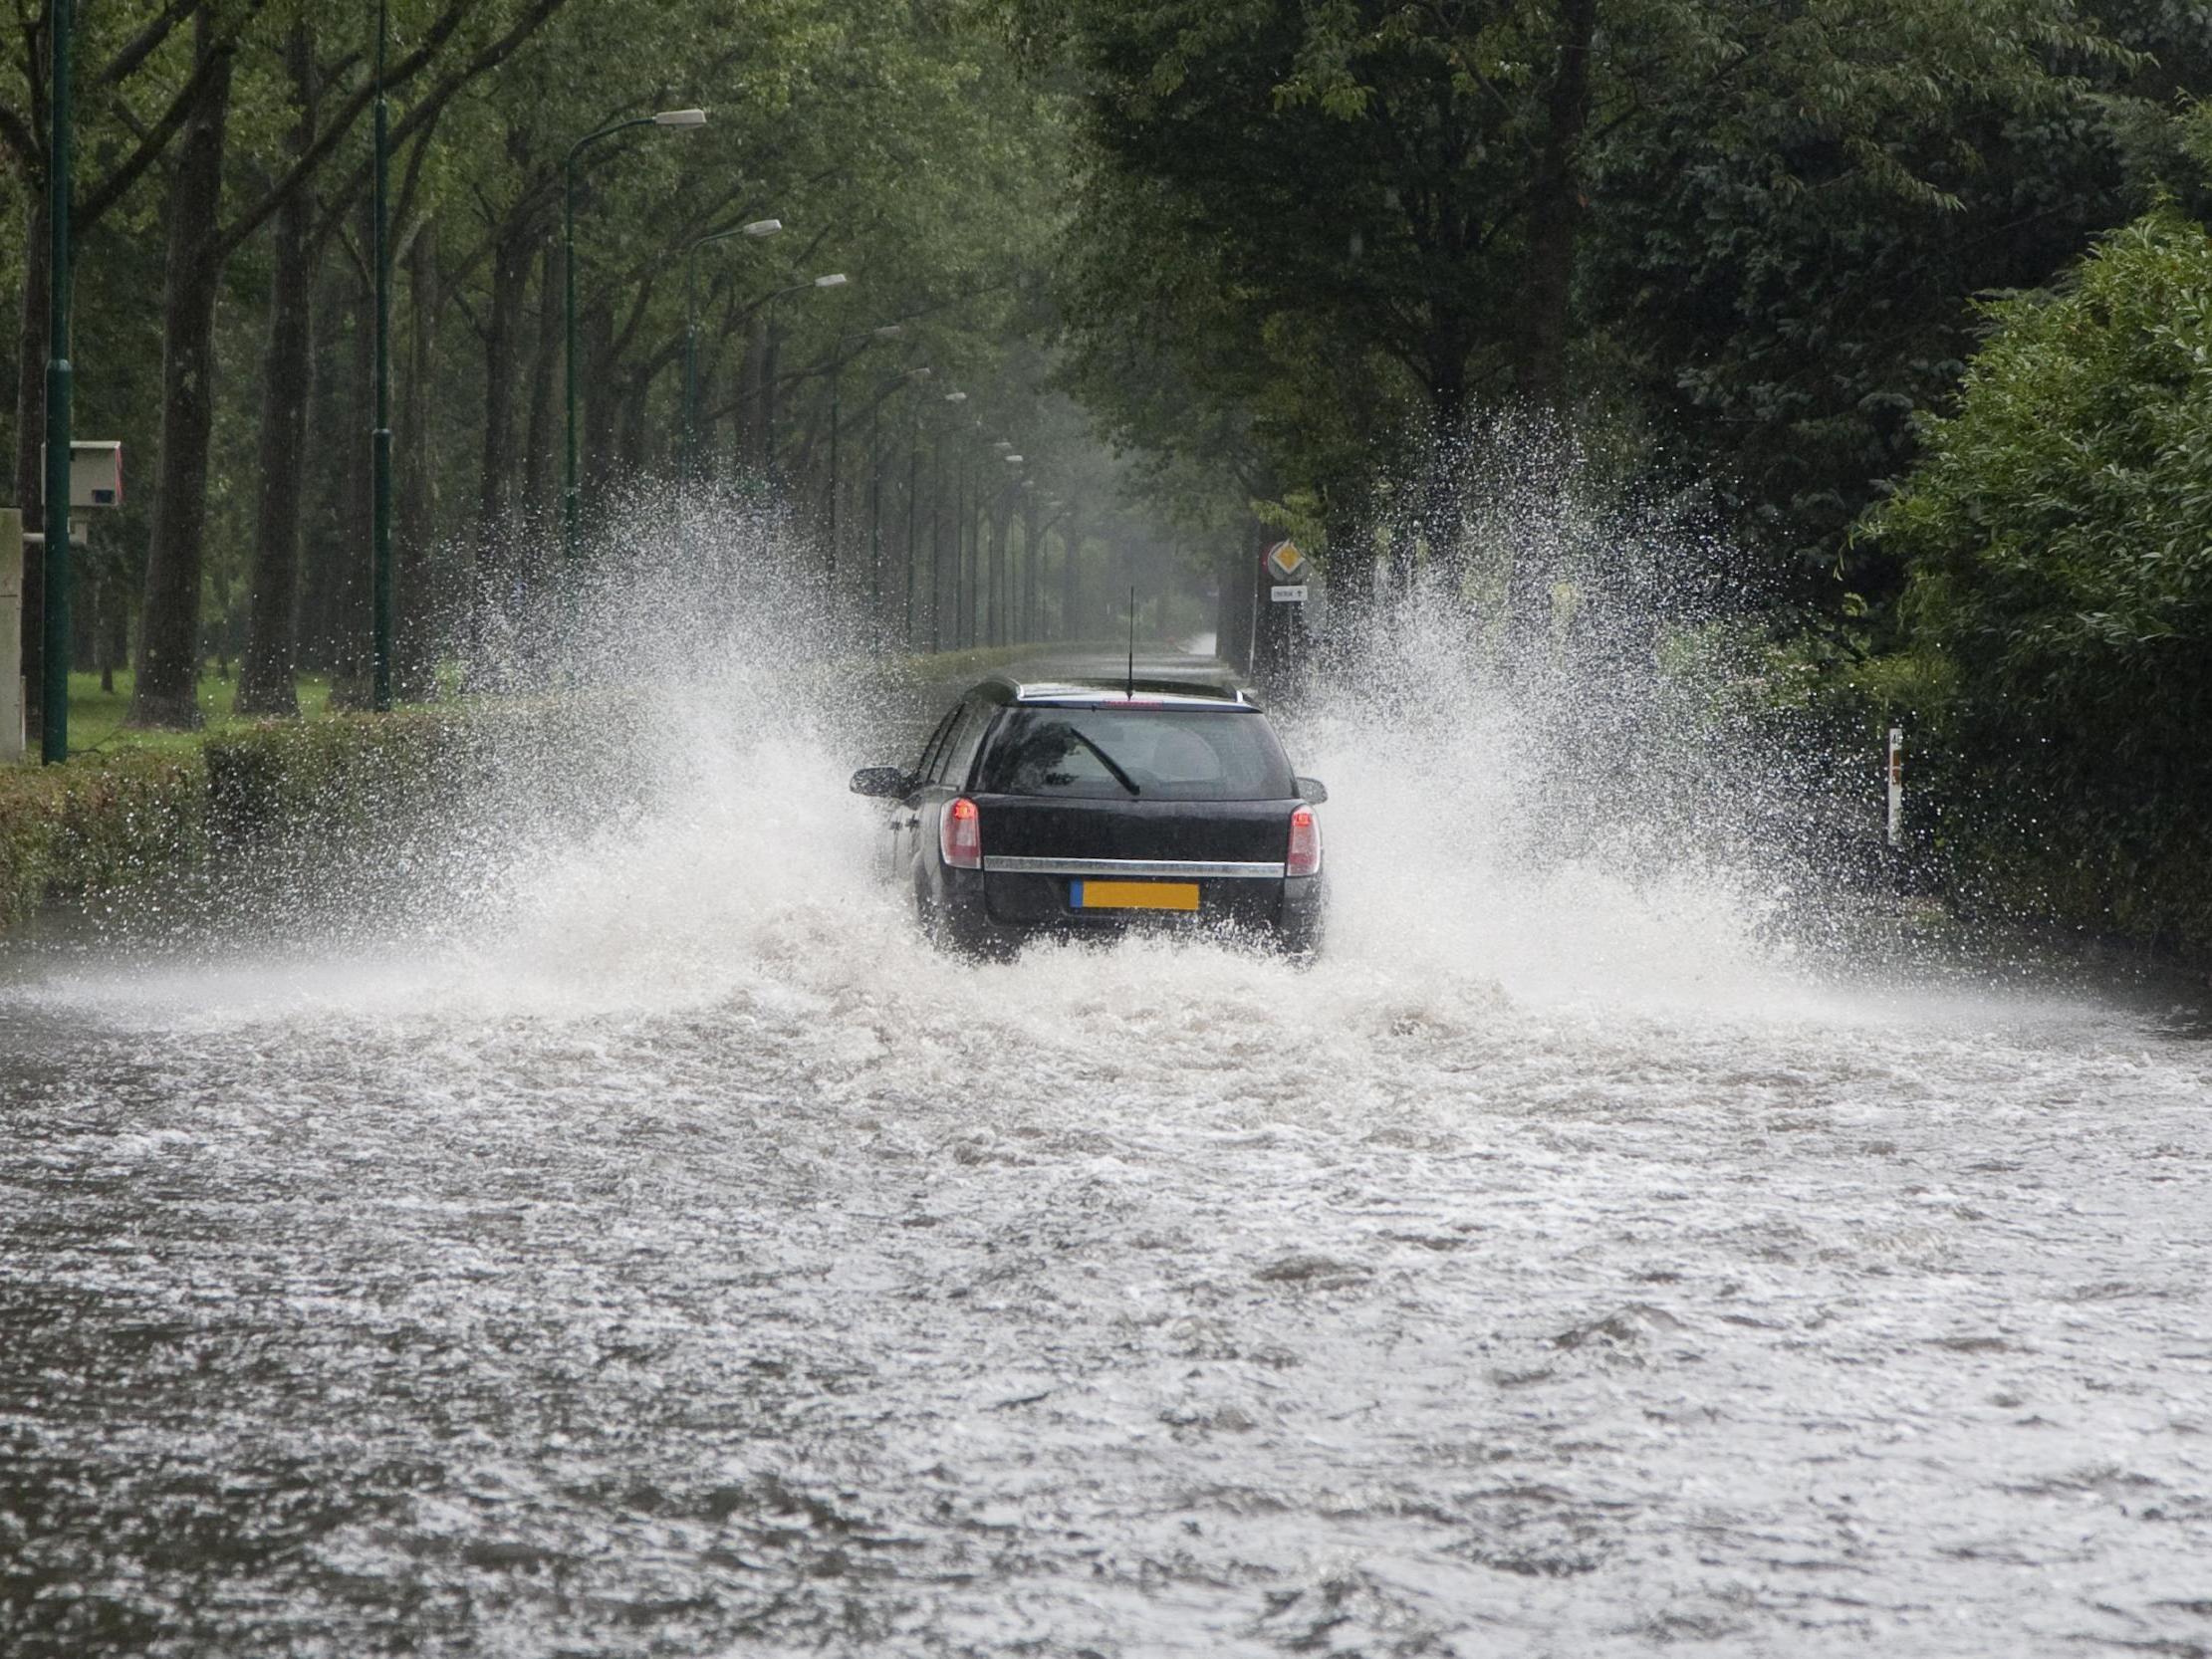 UK weather forecast: Possible 'danger to life' as Britain faces torrential rain and flash flooding